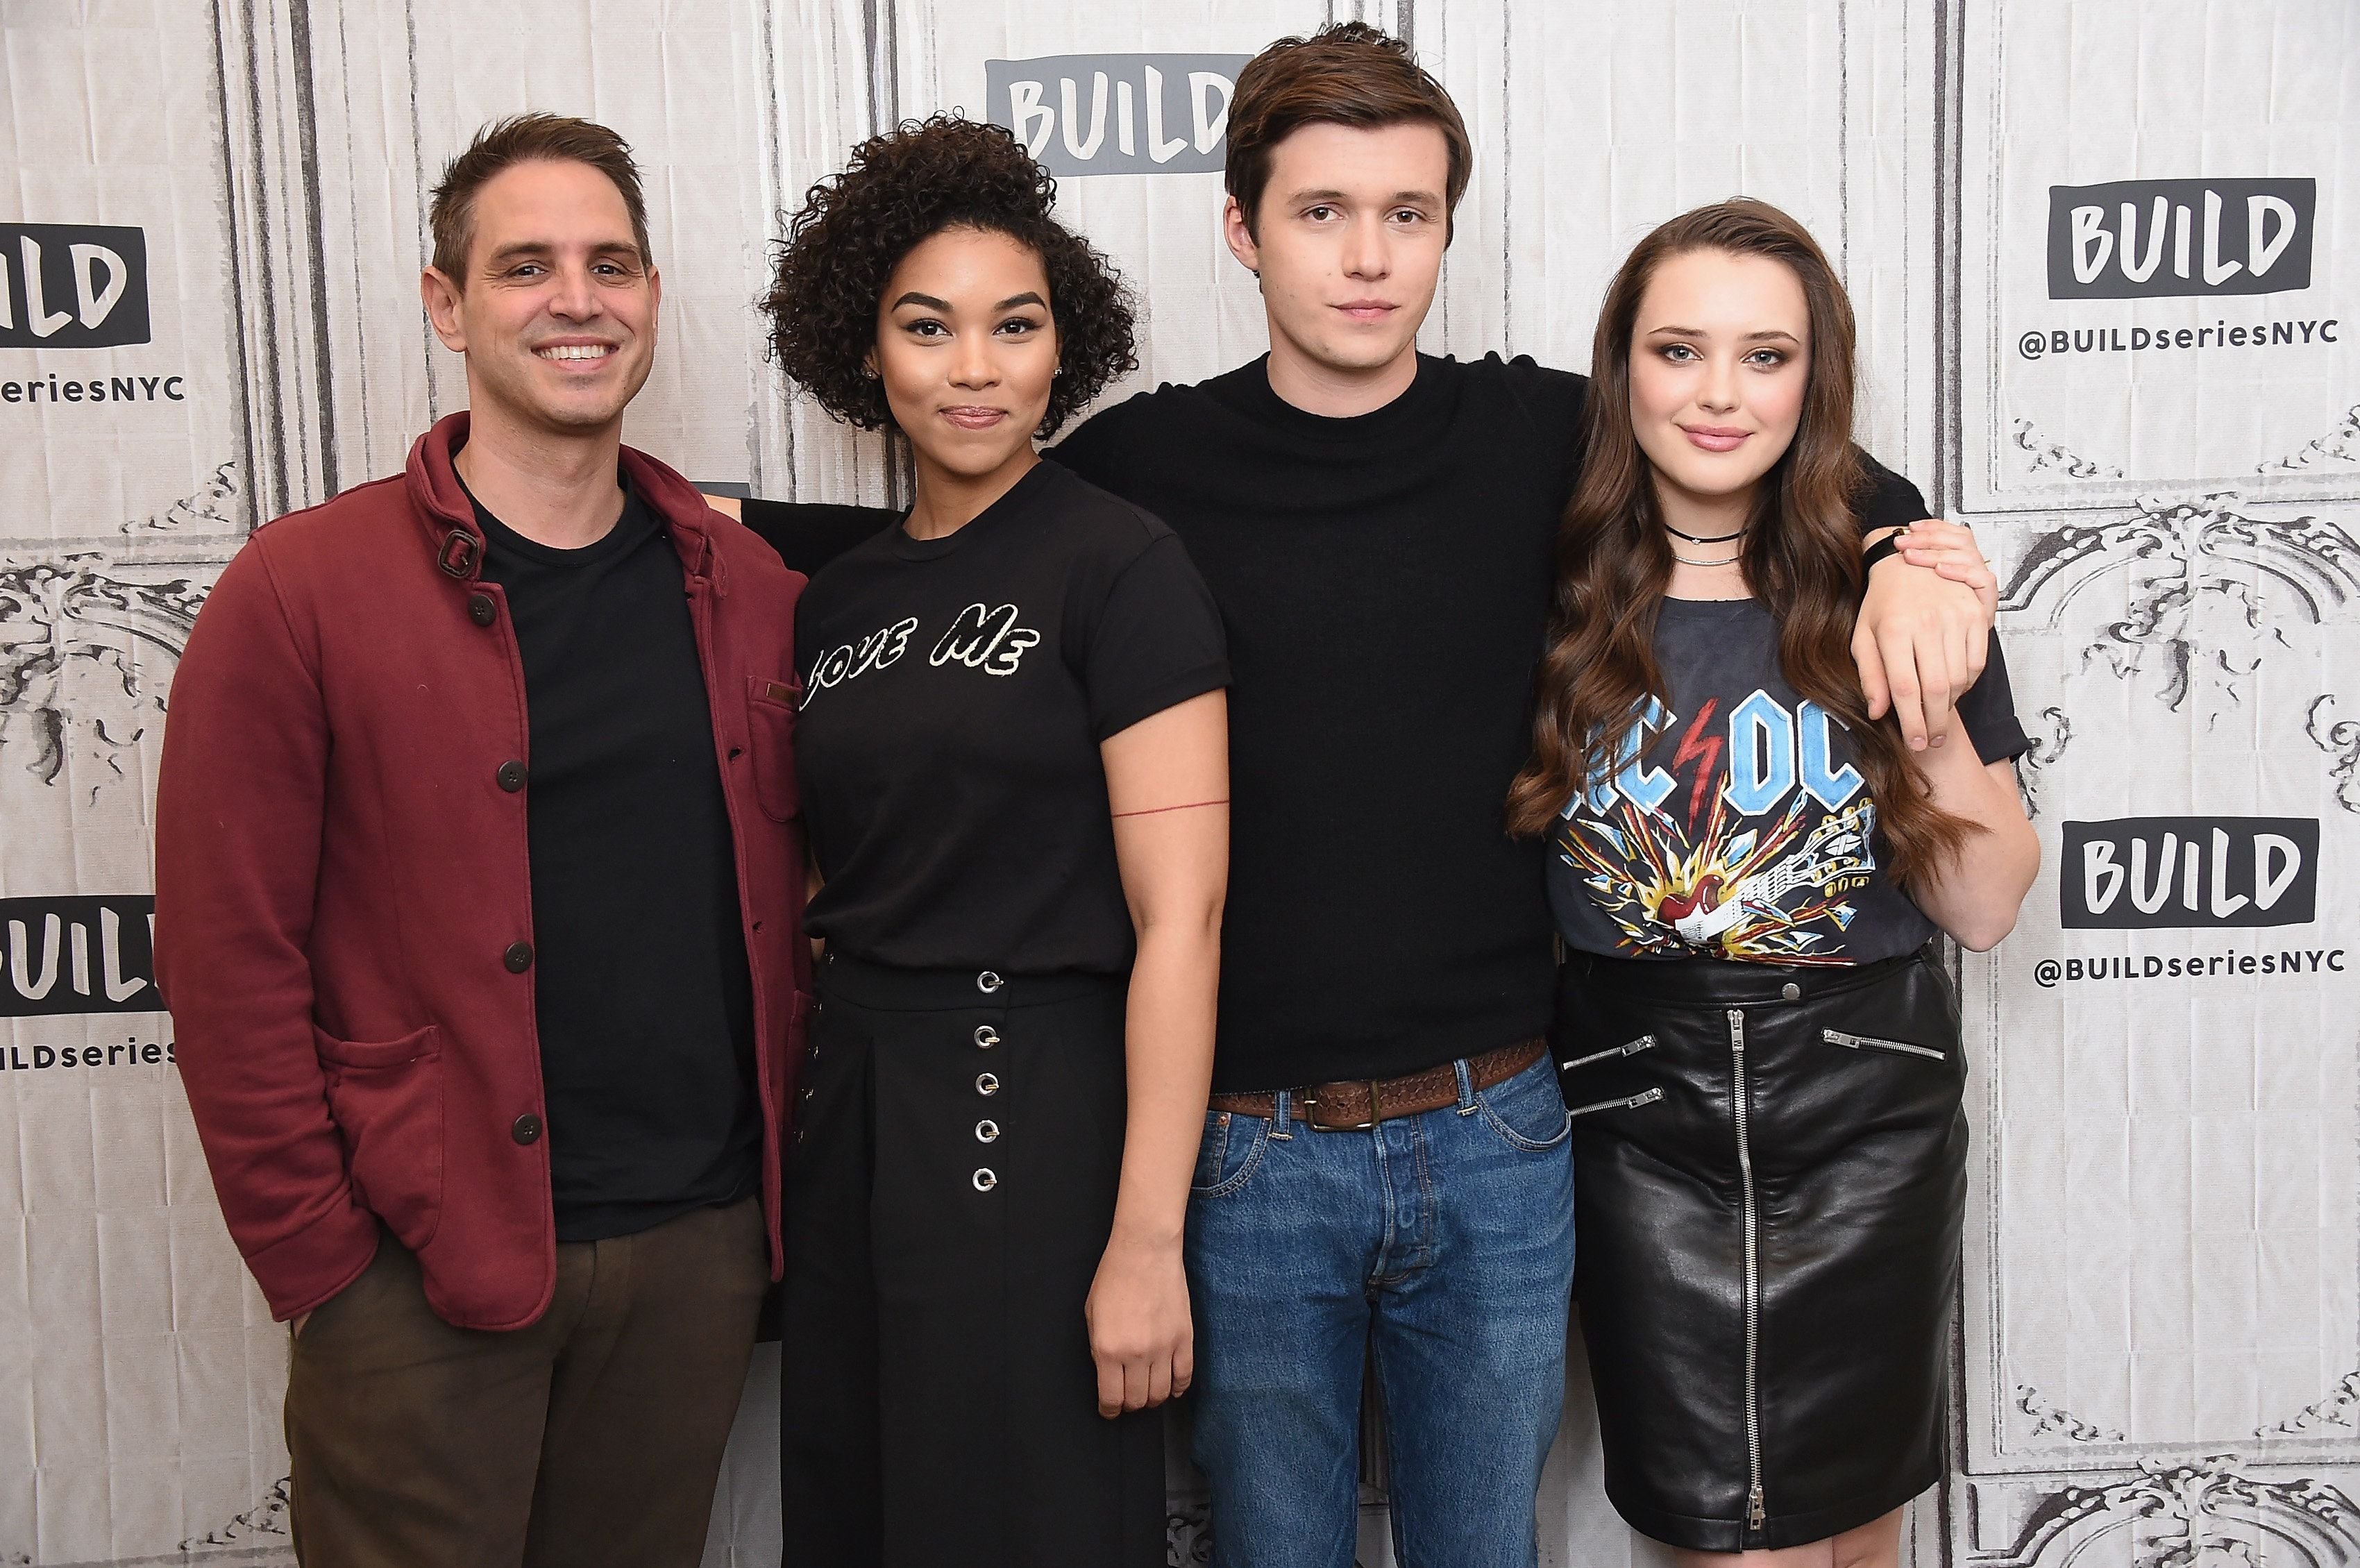 NEW YORK, NY - MARCH 08:  (L-R) Director Greg Berlanti, actors Alexandra Shipp, Nick Robinson and Katherine Langford visit Build Series to discuss the film 'Love, Simon' at Build Studio on March 8, 2018 in New York City.  (Photo by Gary Gershoff/Getty Images)